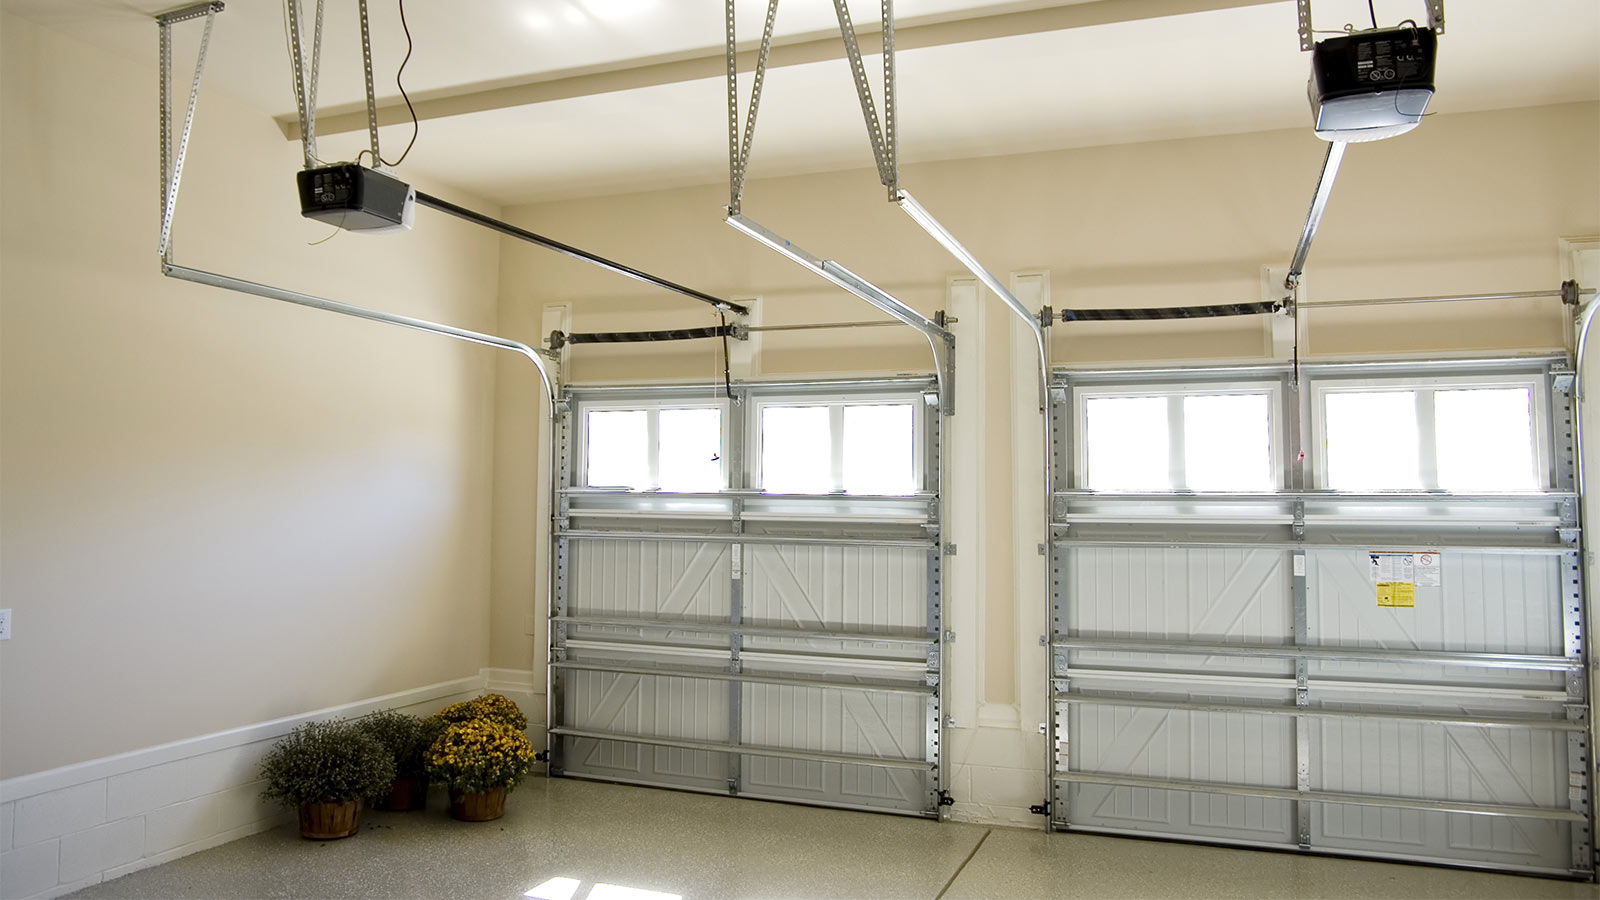 Sectional Garage Doors from Steel Security Doors Rochford suppliers.